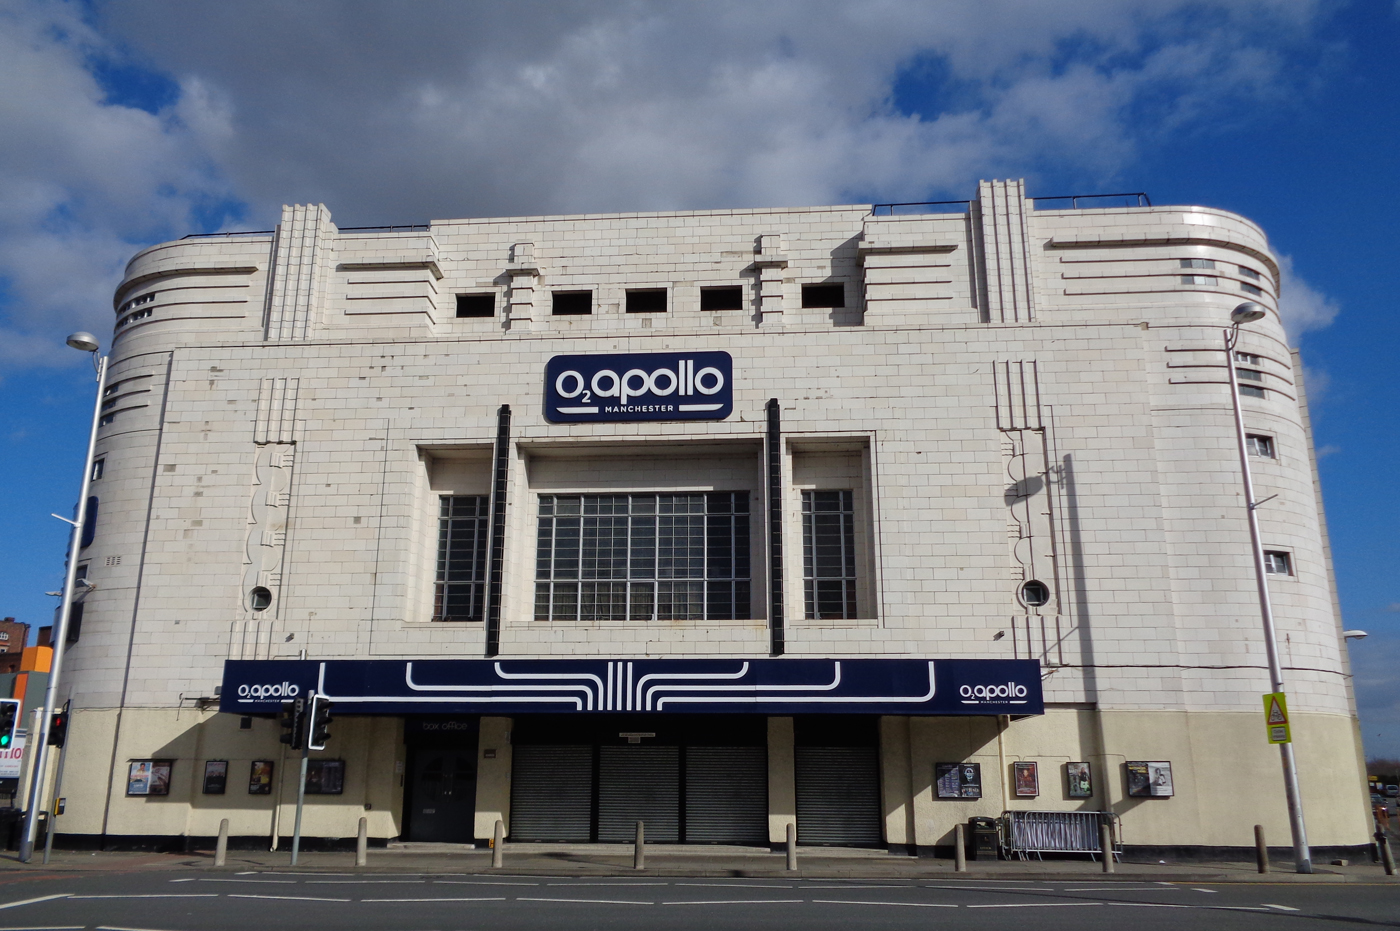 Exterior shot of O2 Apollo Manchester on a clear sunny day.